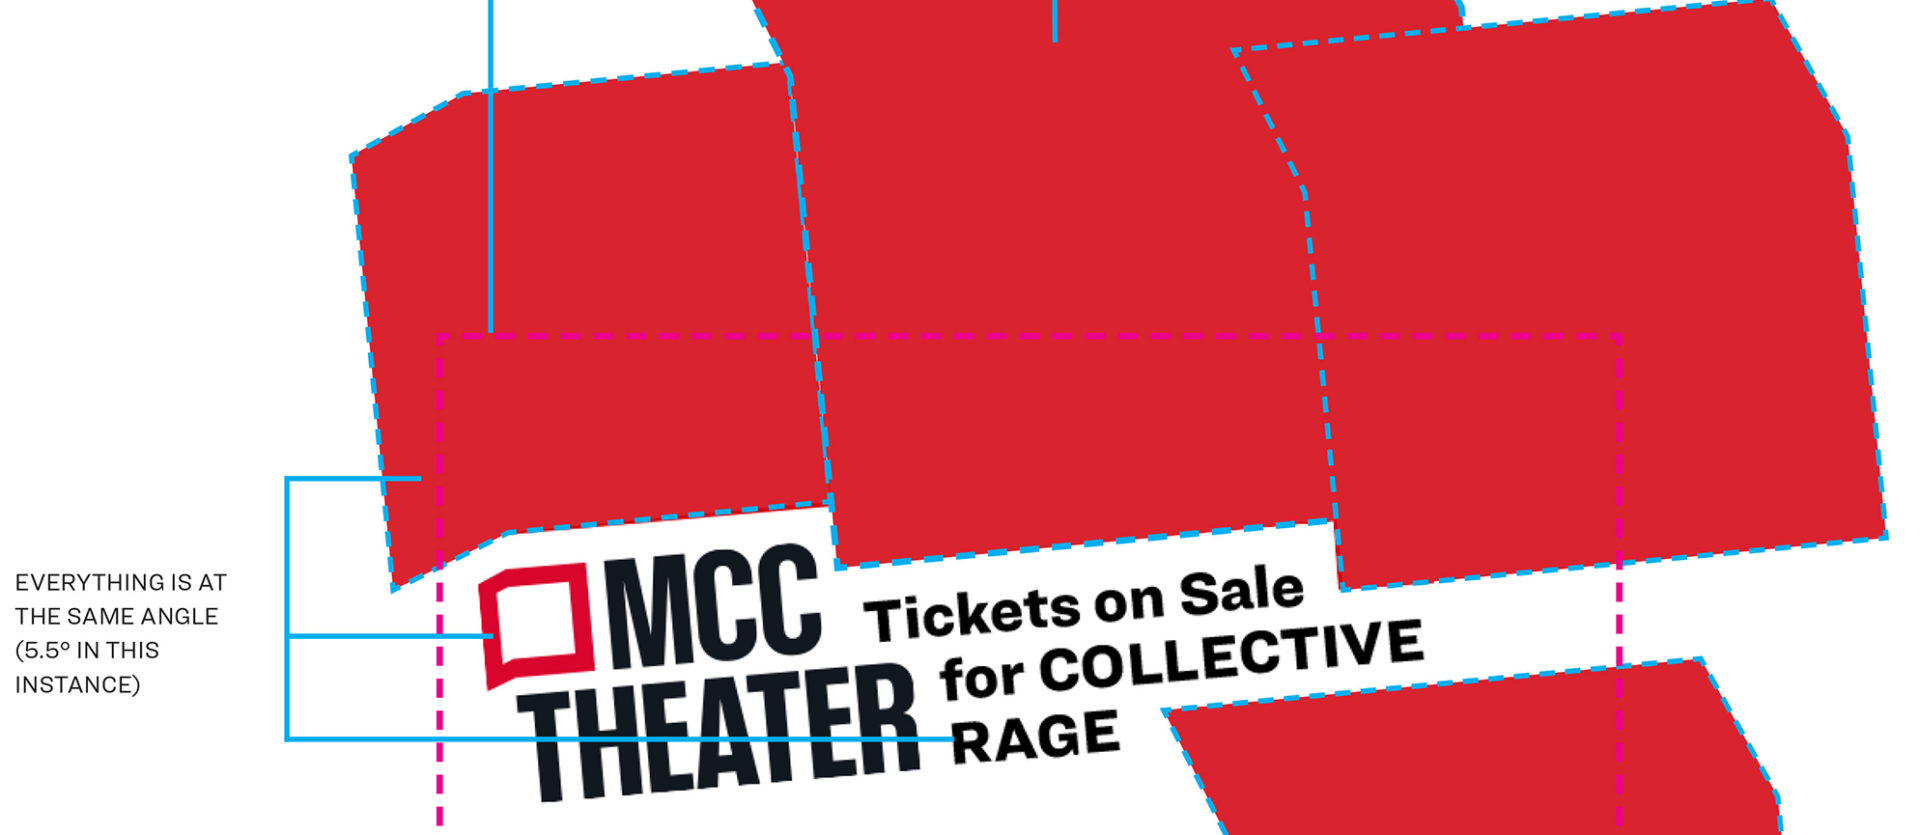 MCC Theater - Flyleaf Creative Inc